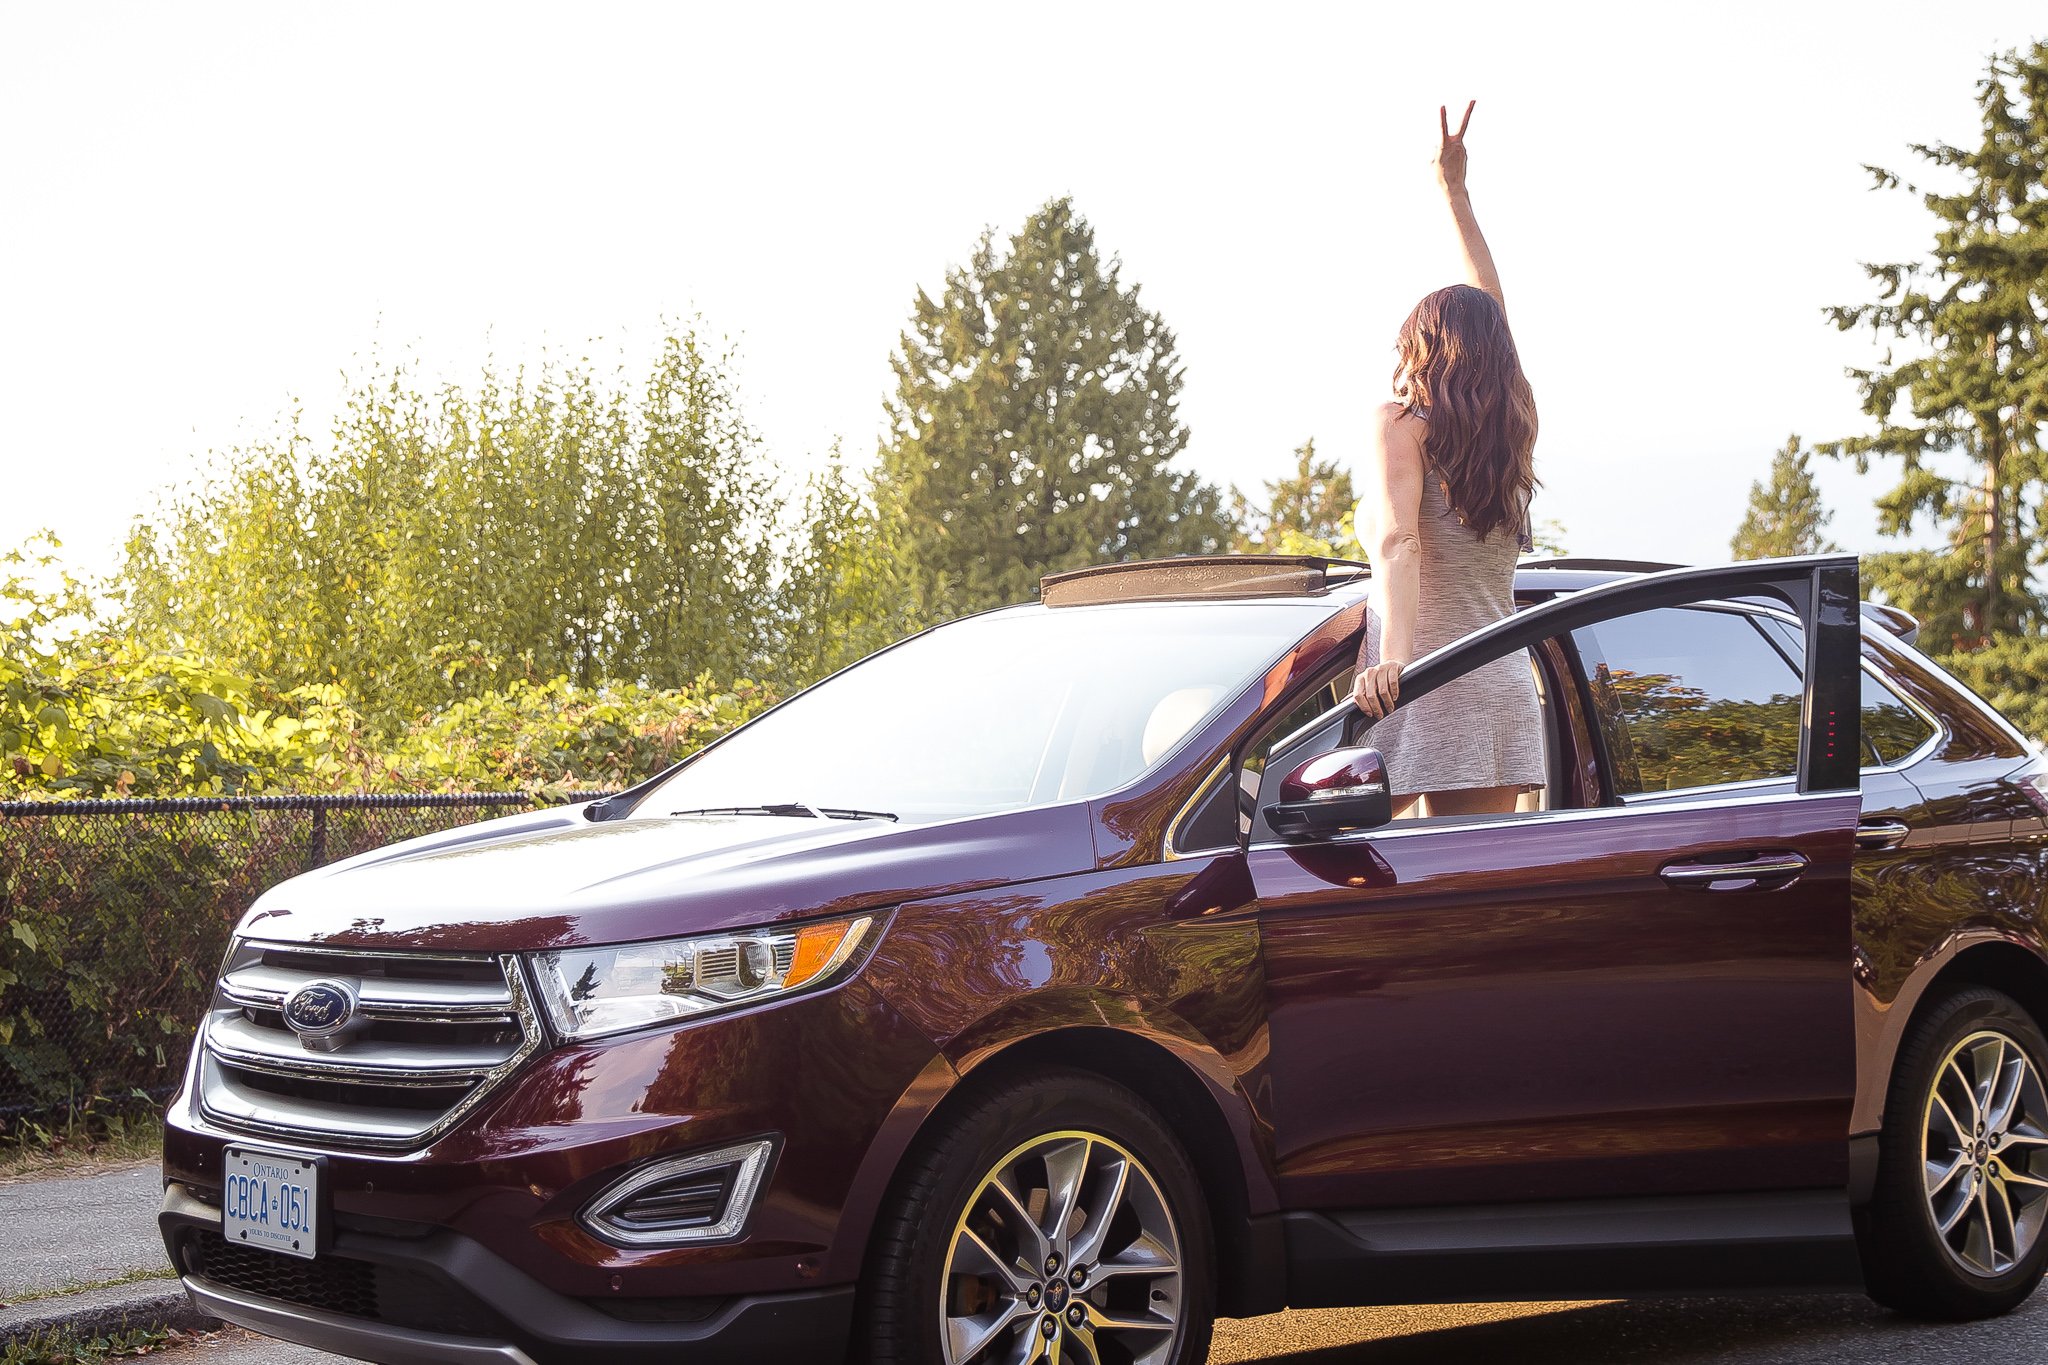 Ford Edge, Summer, Golden Hour, Fashion, Peace